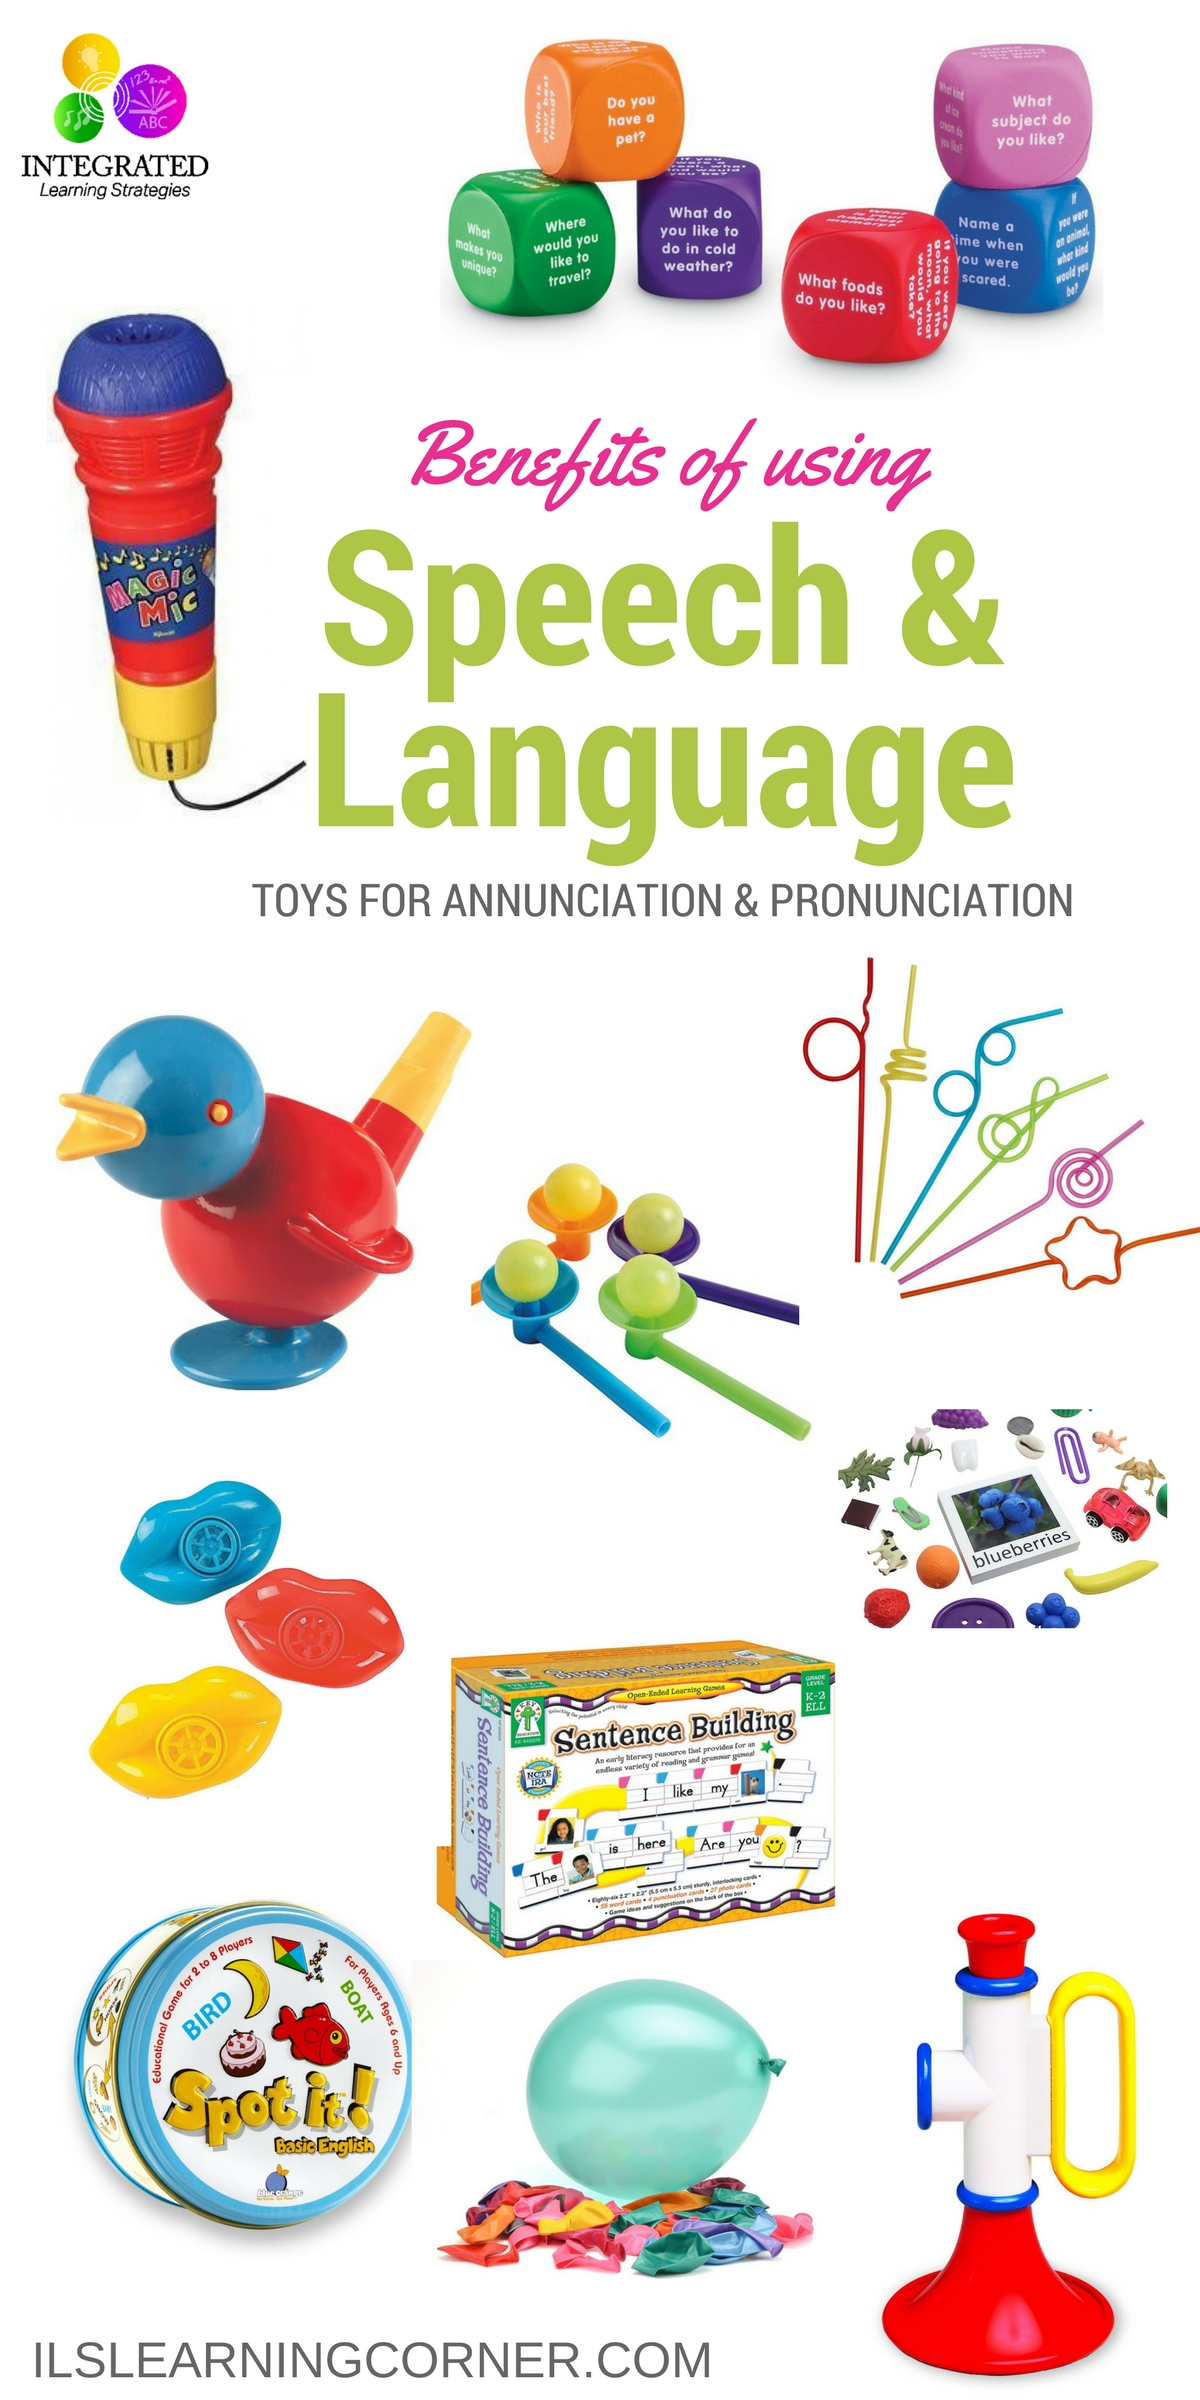 Speech and Language Tools for Building Pronunciation Articulation